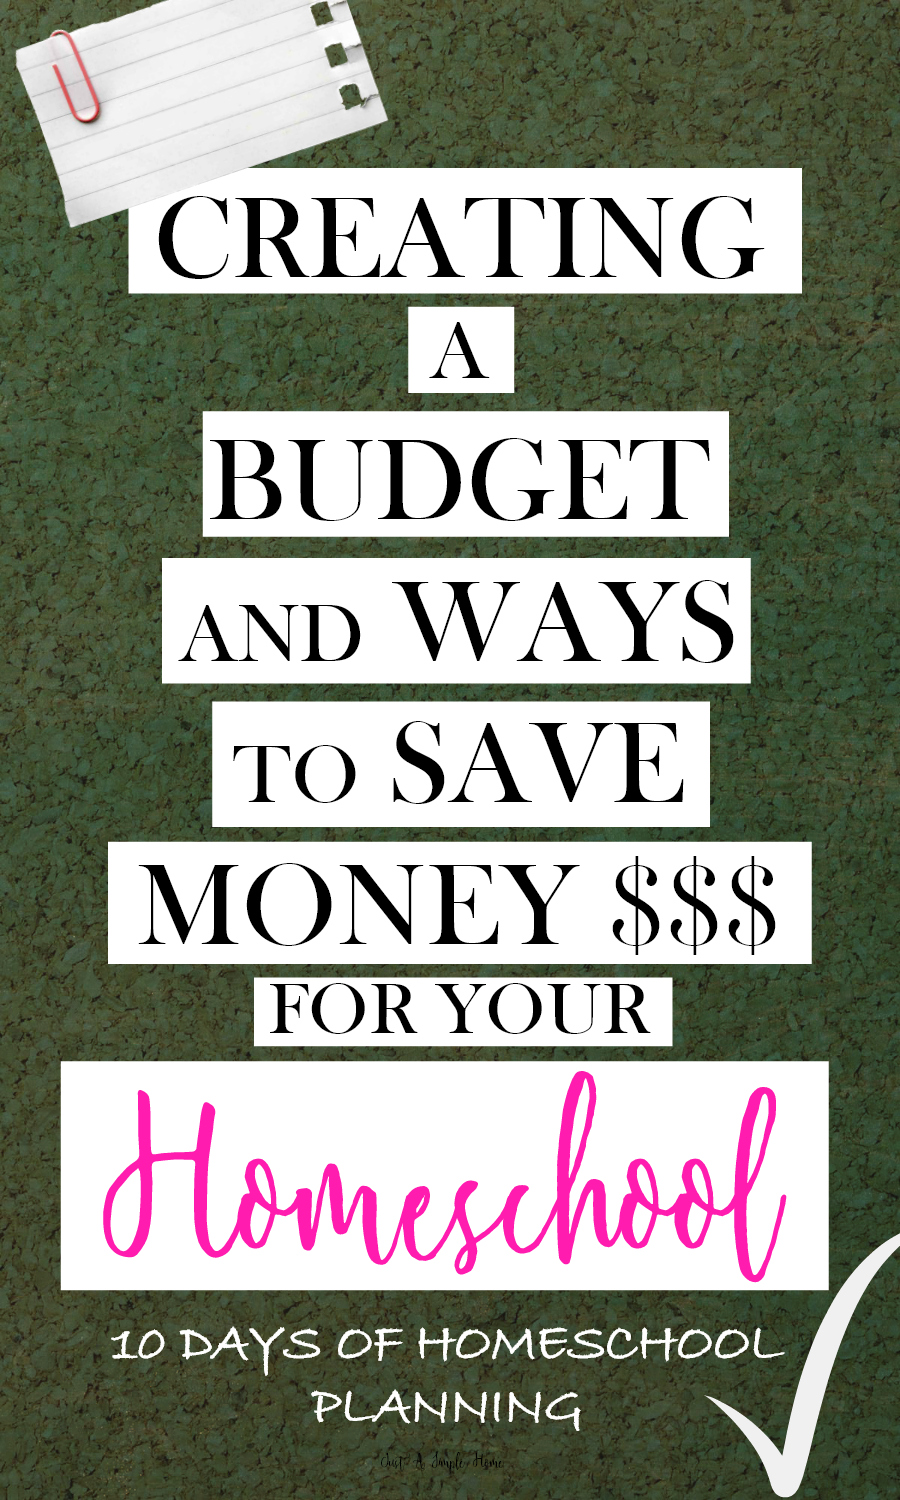 Creating a Budget and Ways to Save Money in Your Homeschool - 10 Days of Homeschool Planning